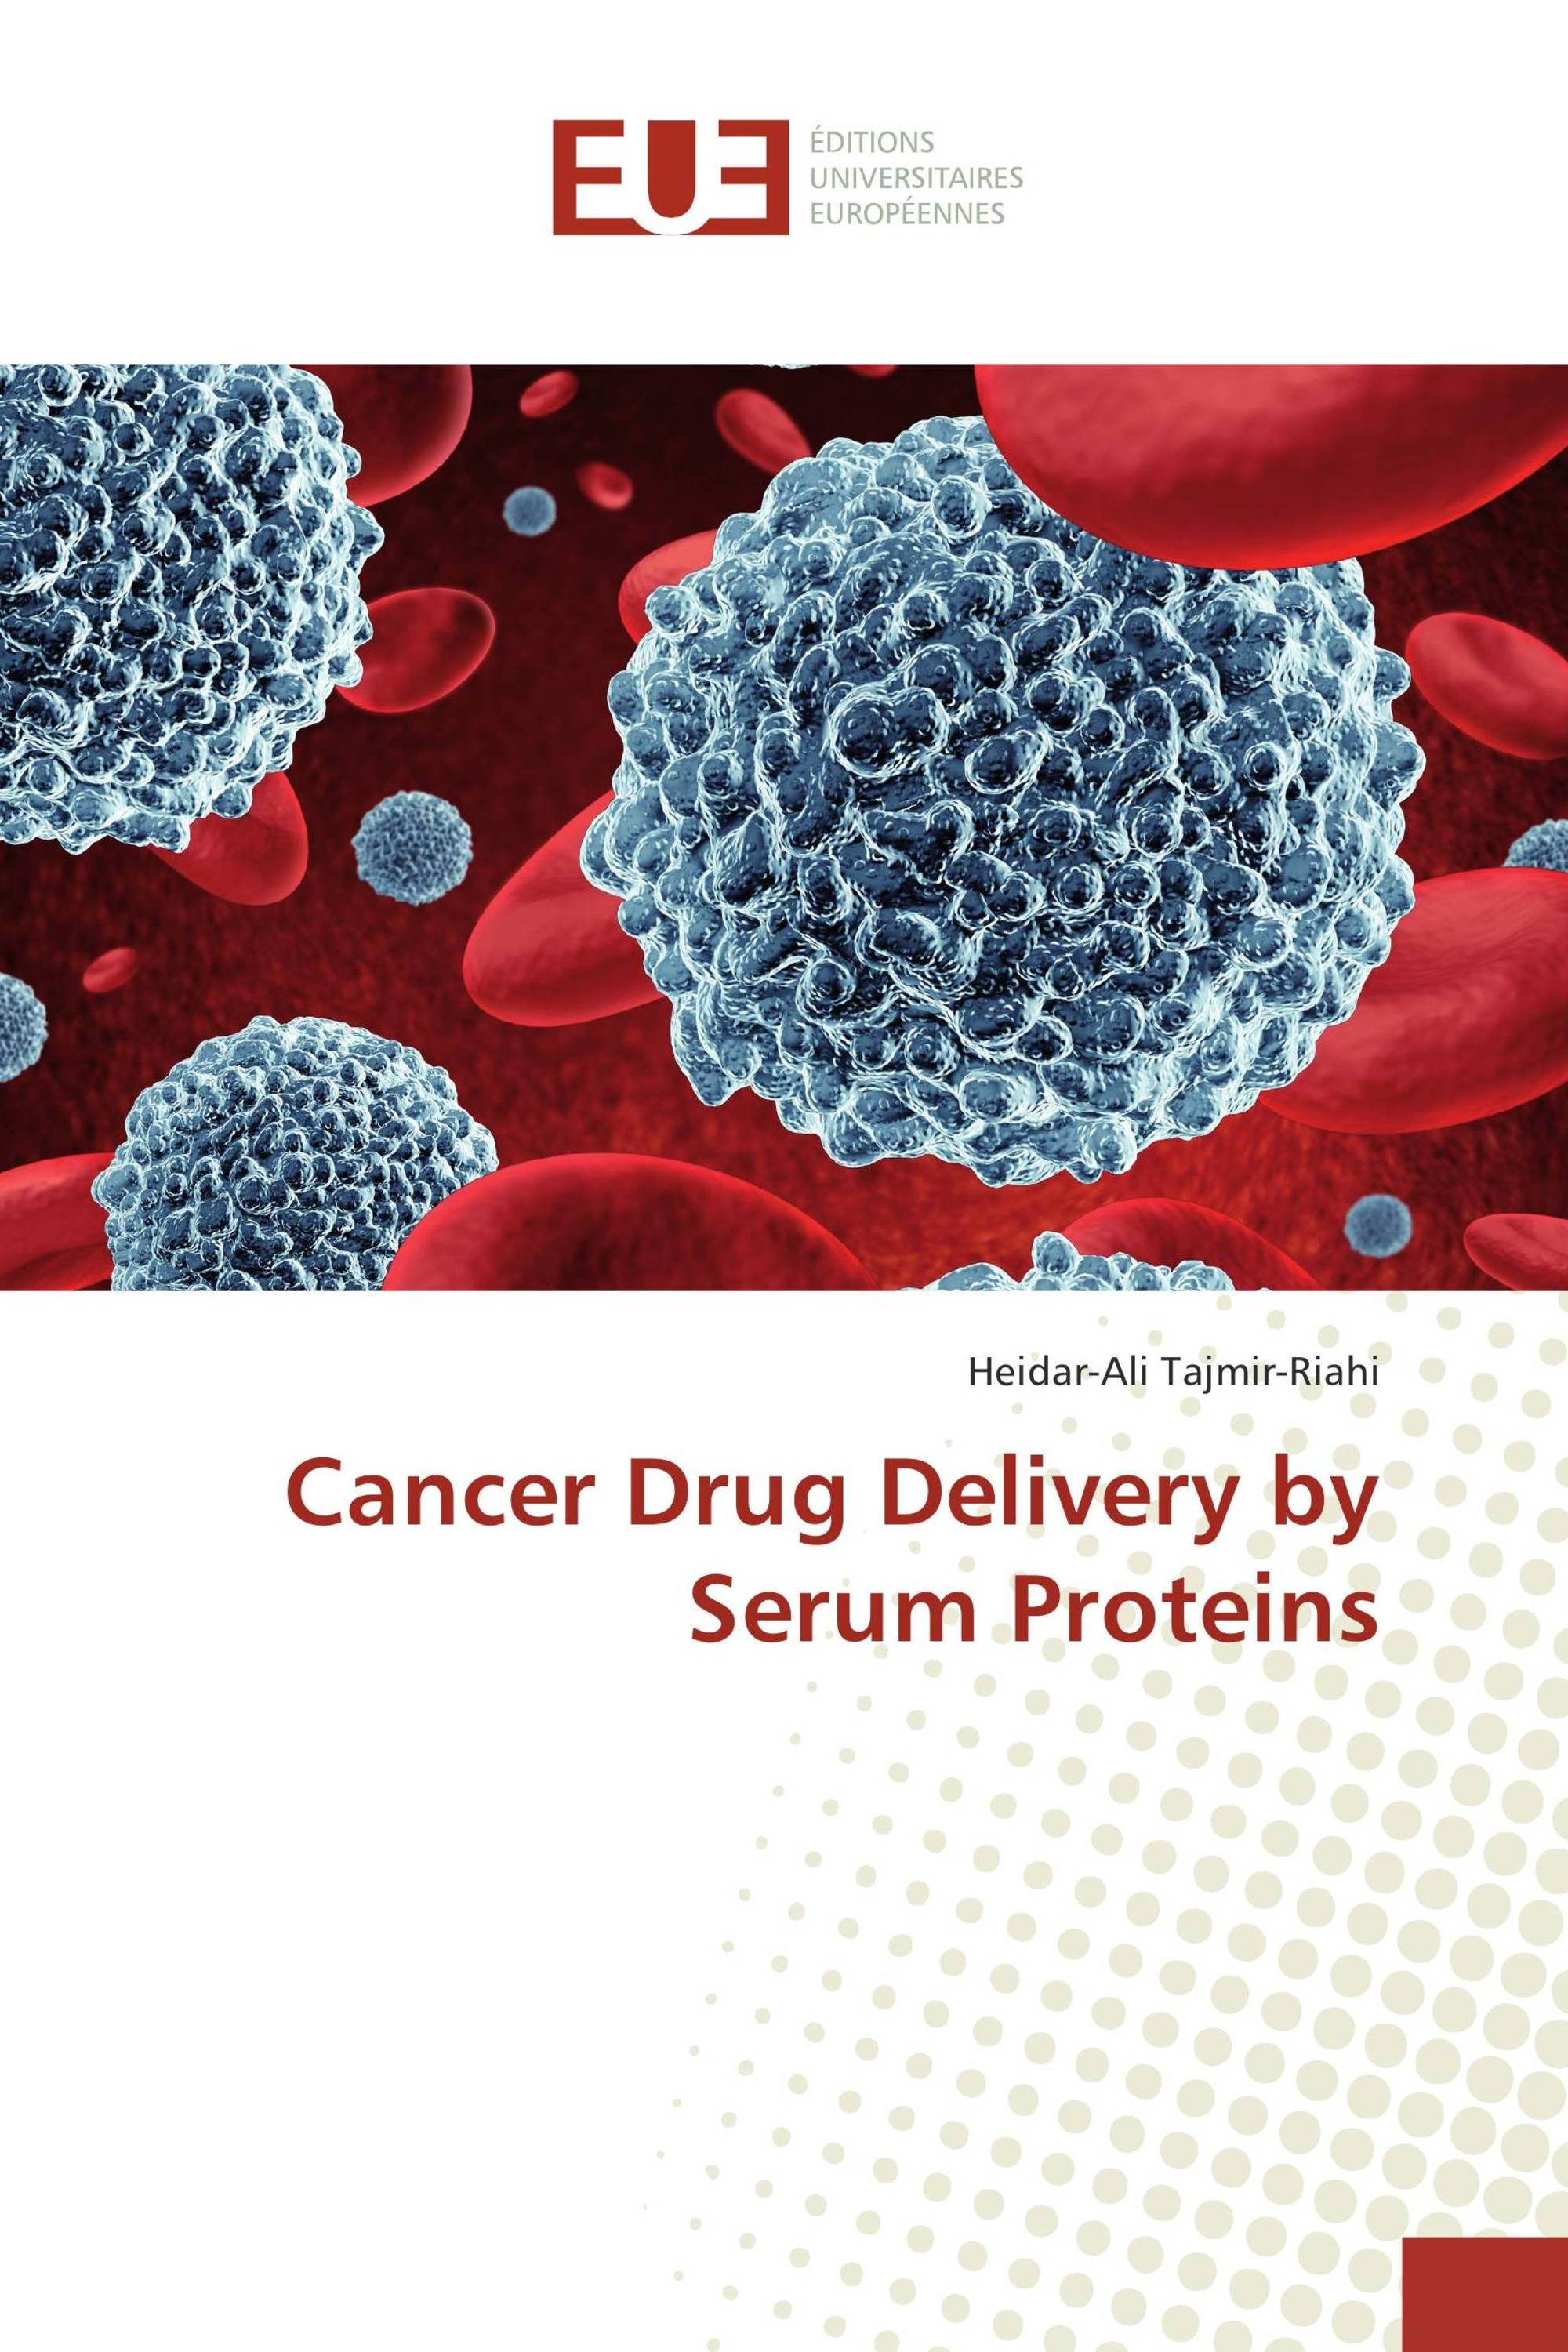 Cancer Drug Delivery by Serum Proteins